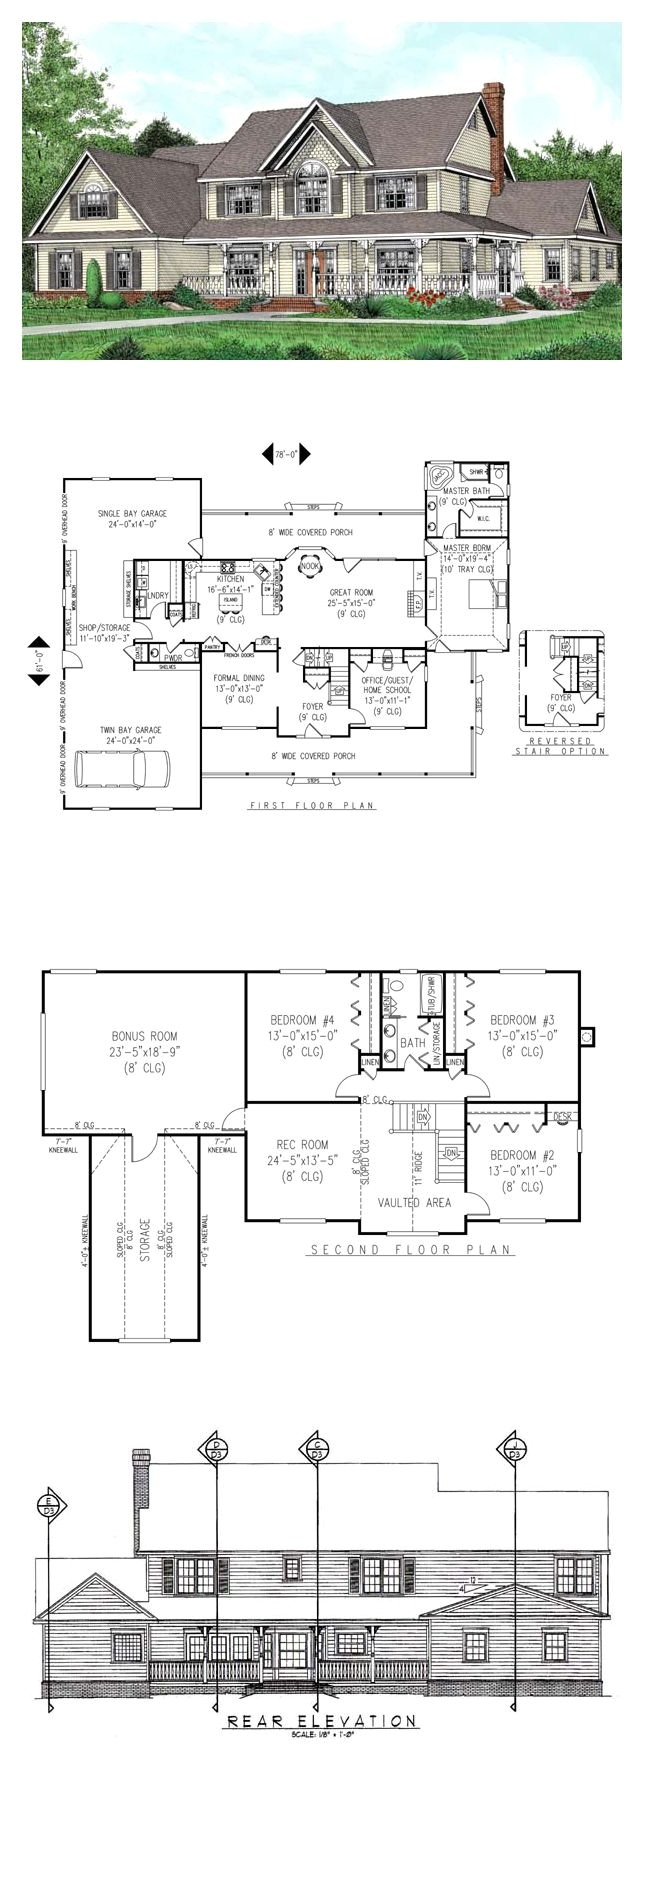 single story house plans with bonus room